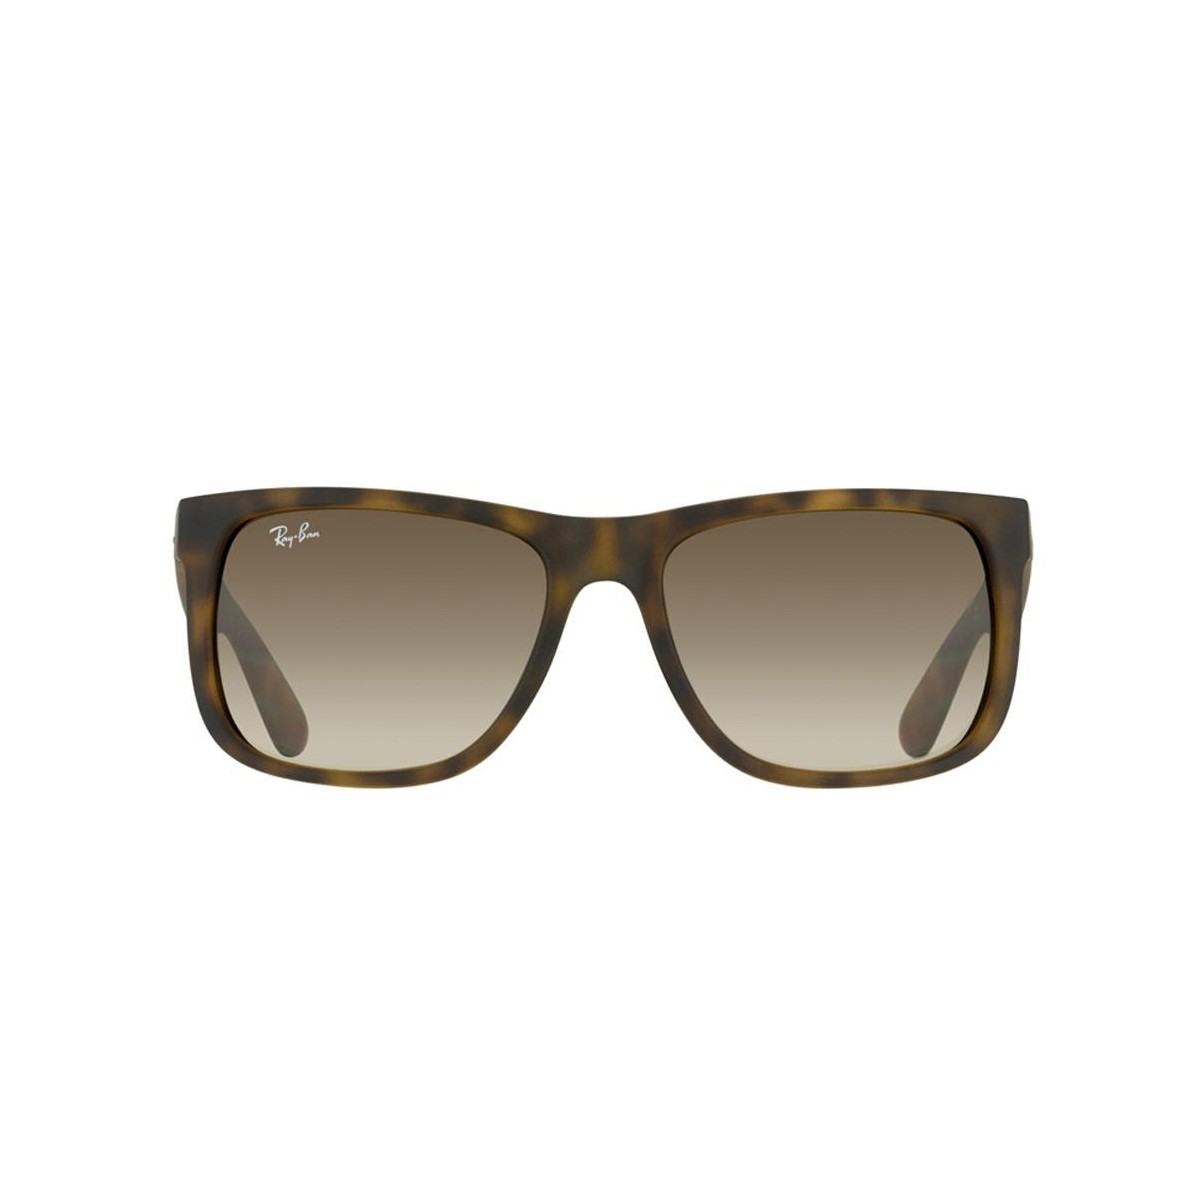 RAY BAN Justin RB4165L Tartaruga - Marron/Degradê- 4165L-710-13/55